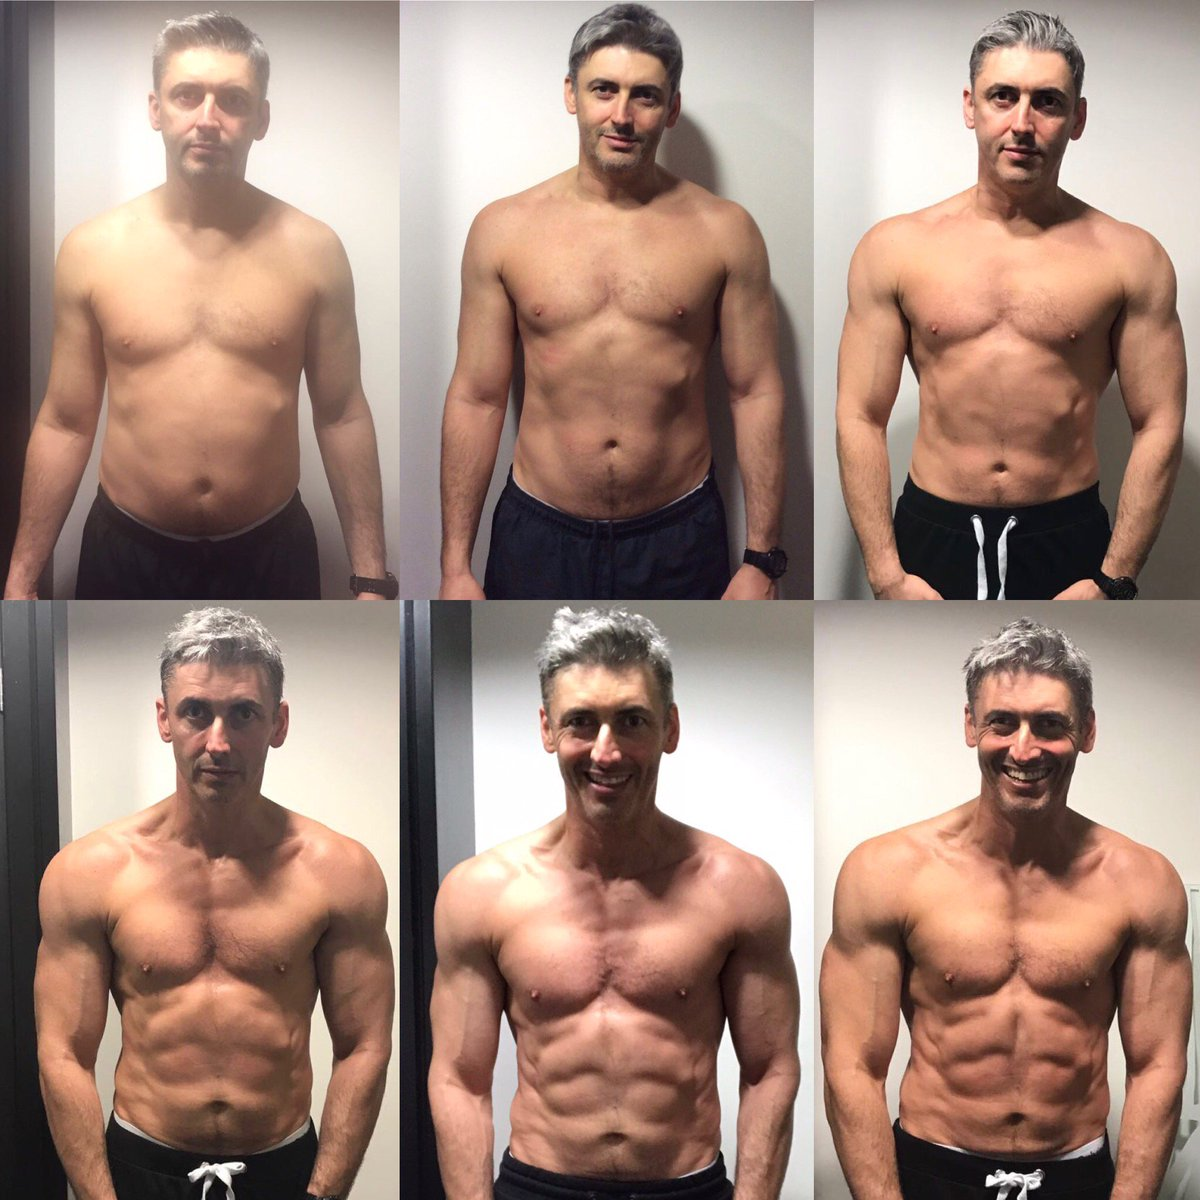 A Guy Has Halved His Body Fat In Just A Few Months He Looks Totally